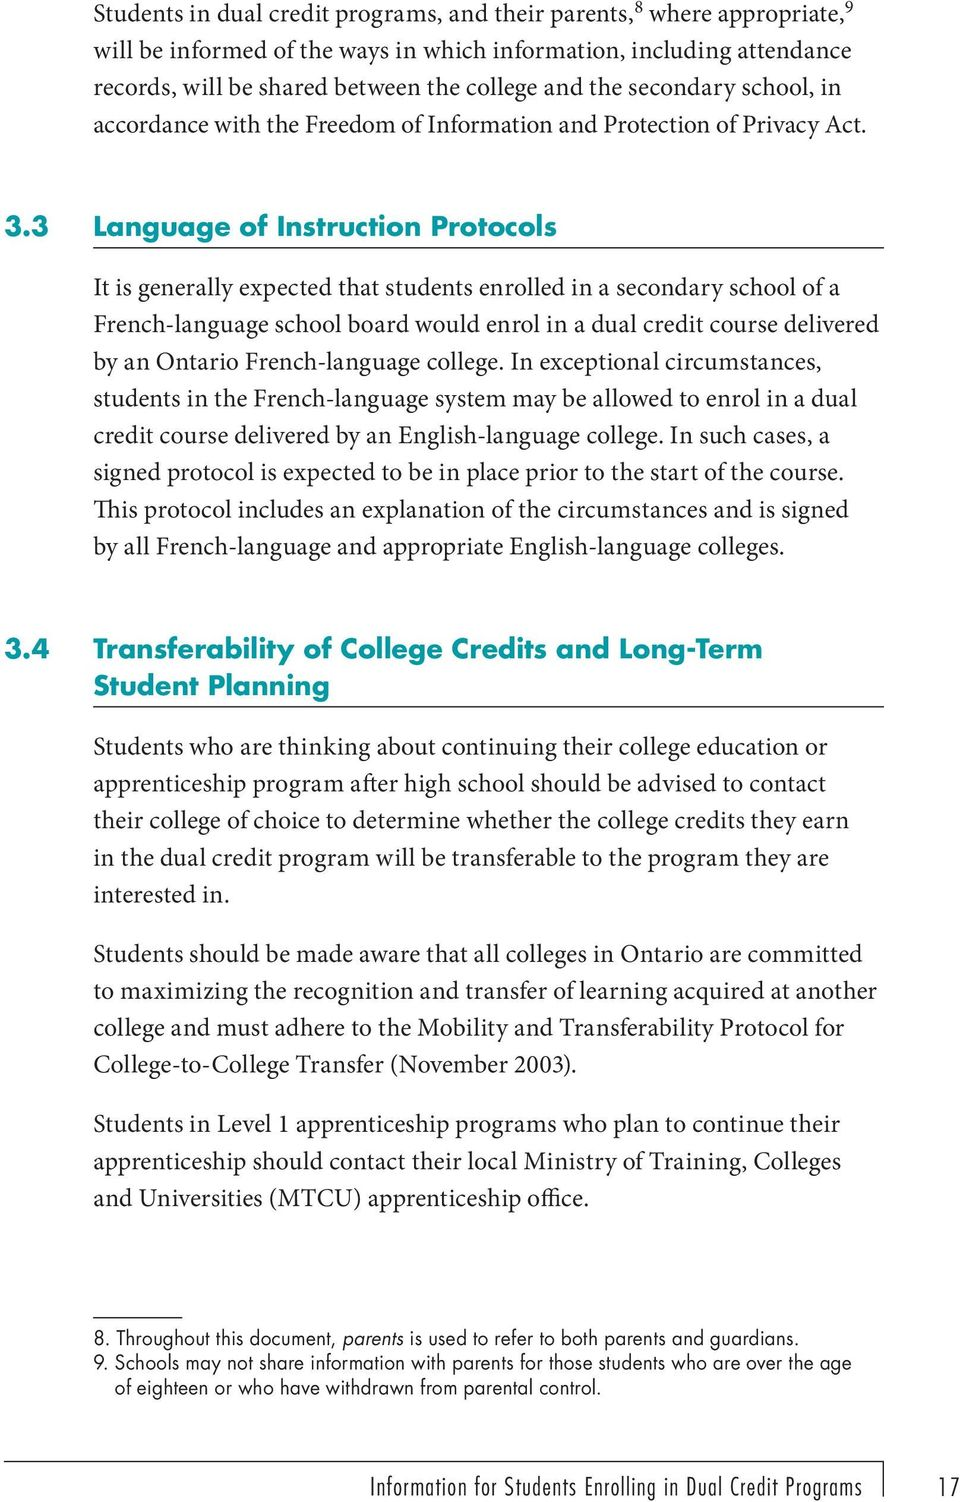 Long Are College Credits Appropriate